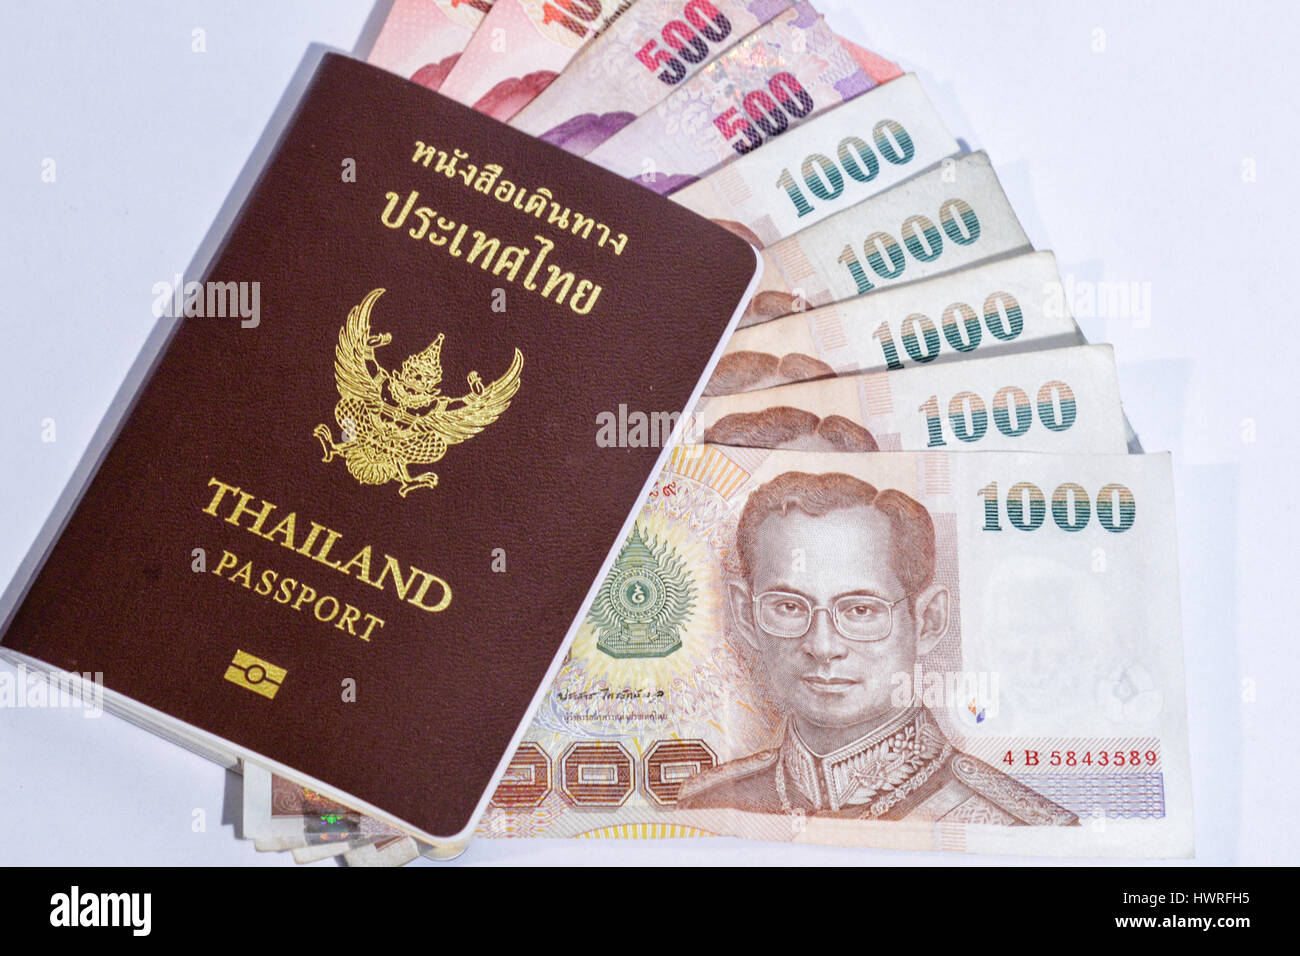 Thailand passport isolated on white background with thai